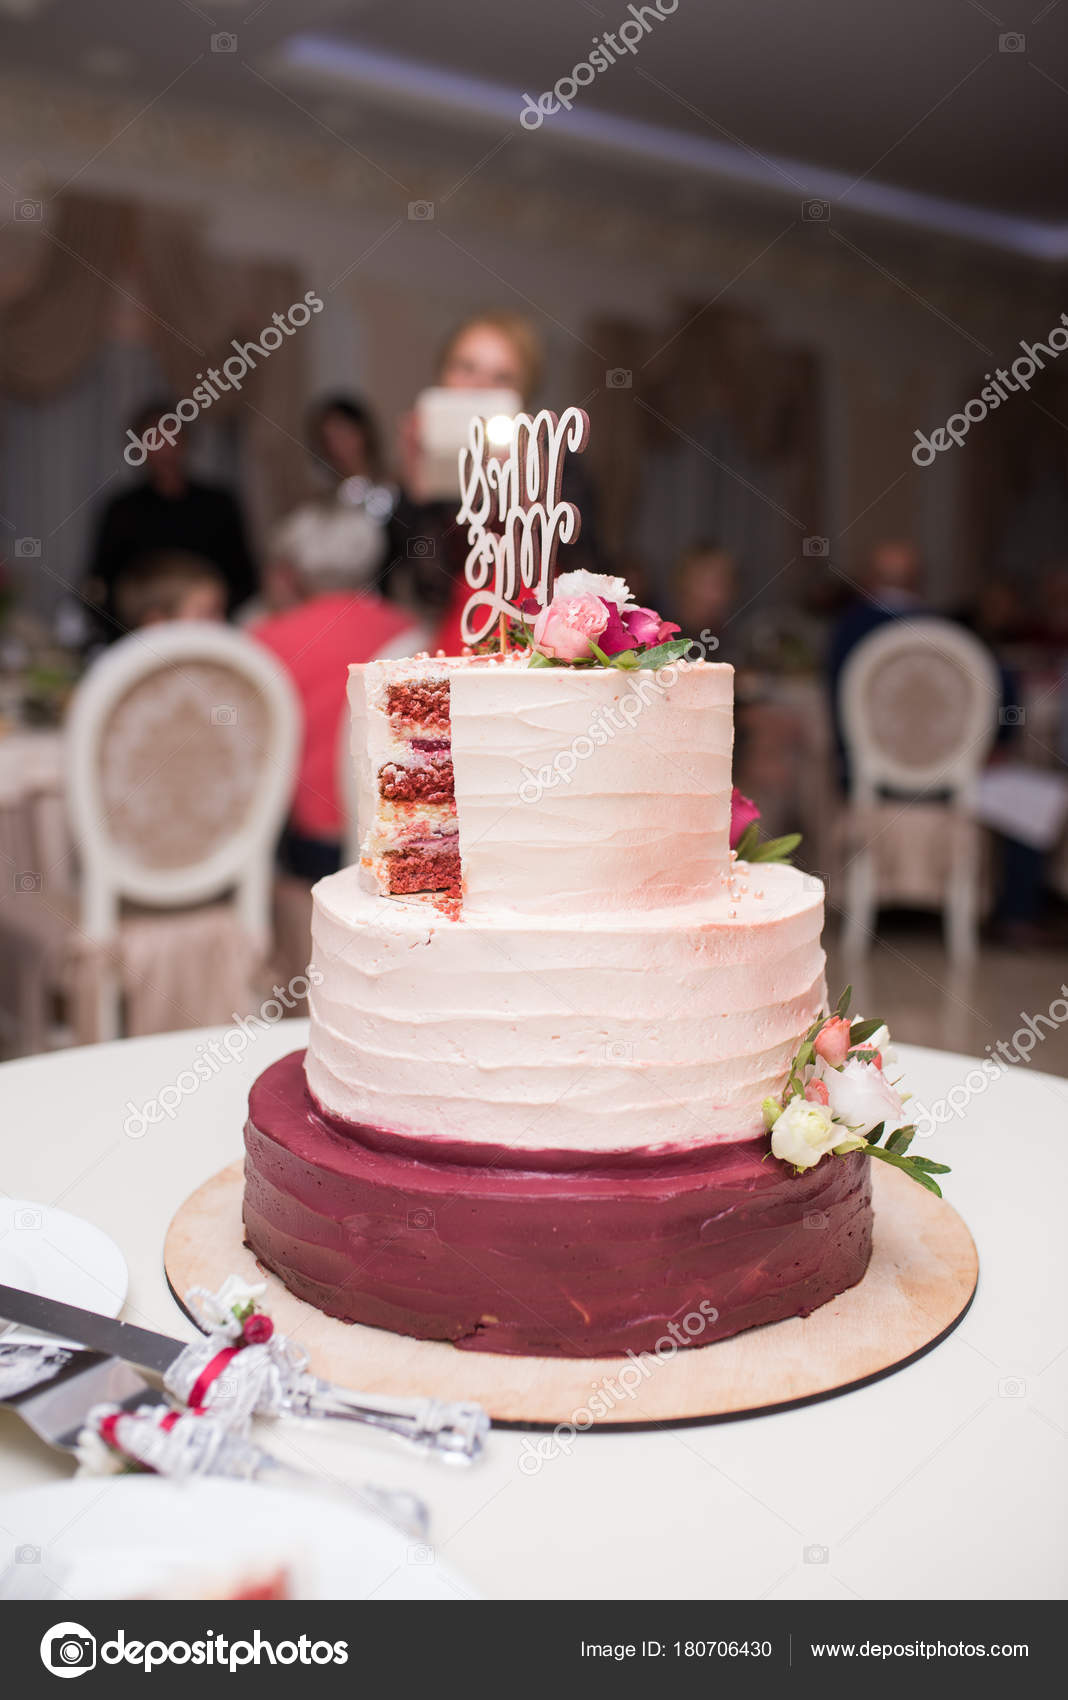 White Red Tree Tier Wedding Cake Fresh Flowers Table Stock Photo